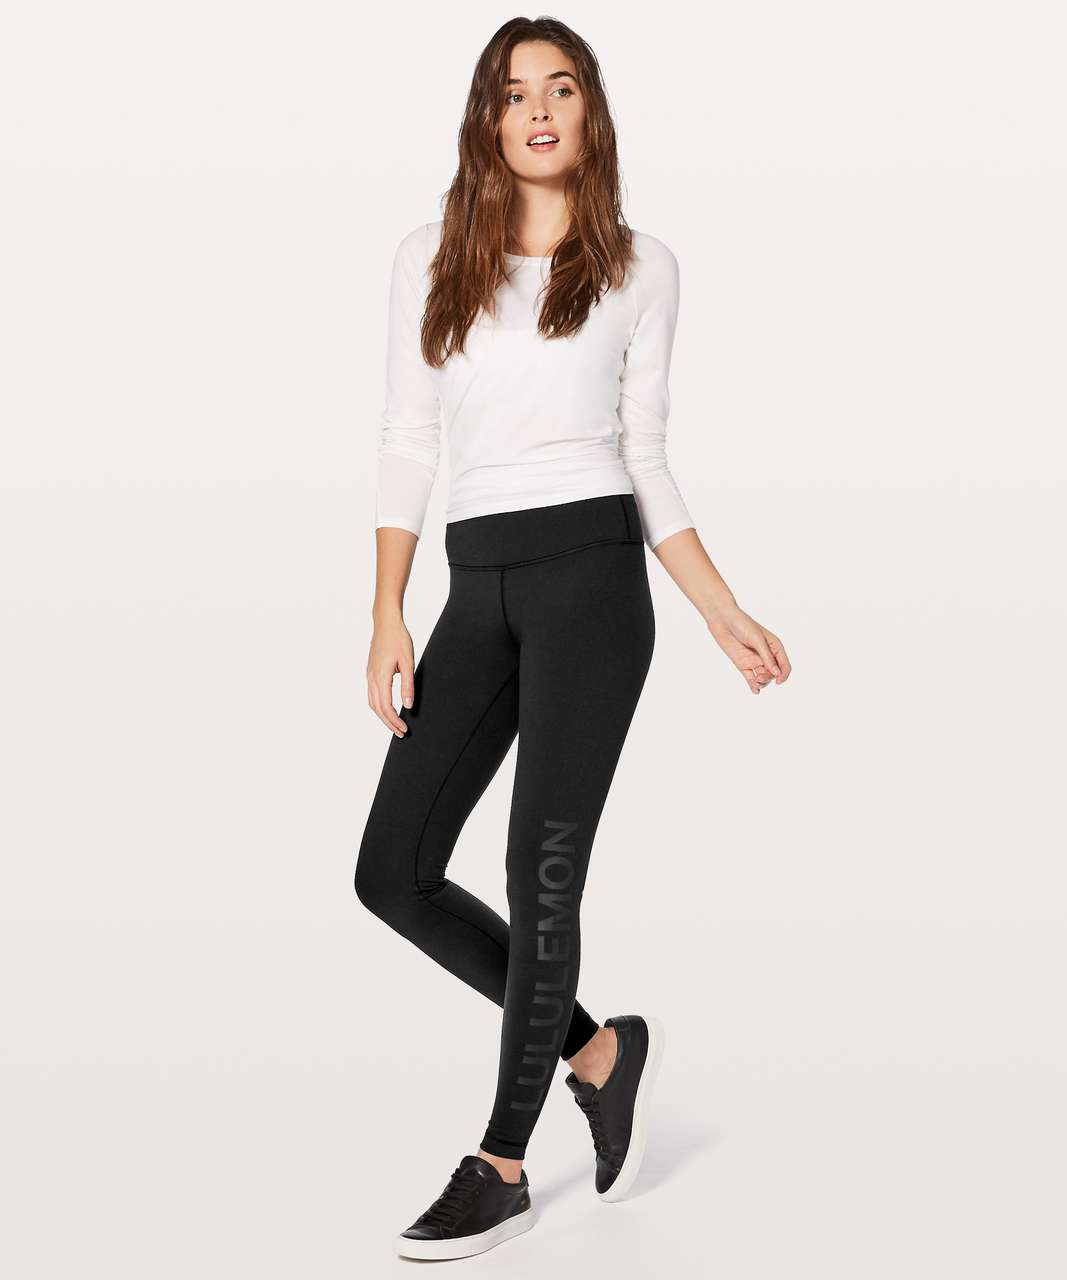 Lululemon Wunder Under Hi-Rise Tight Expression - Black